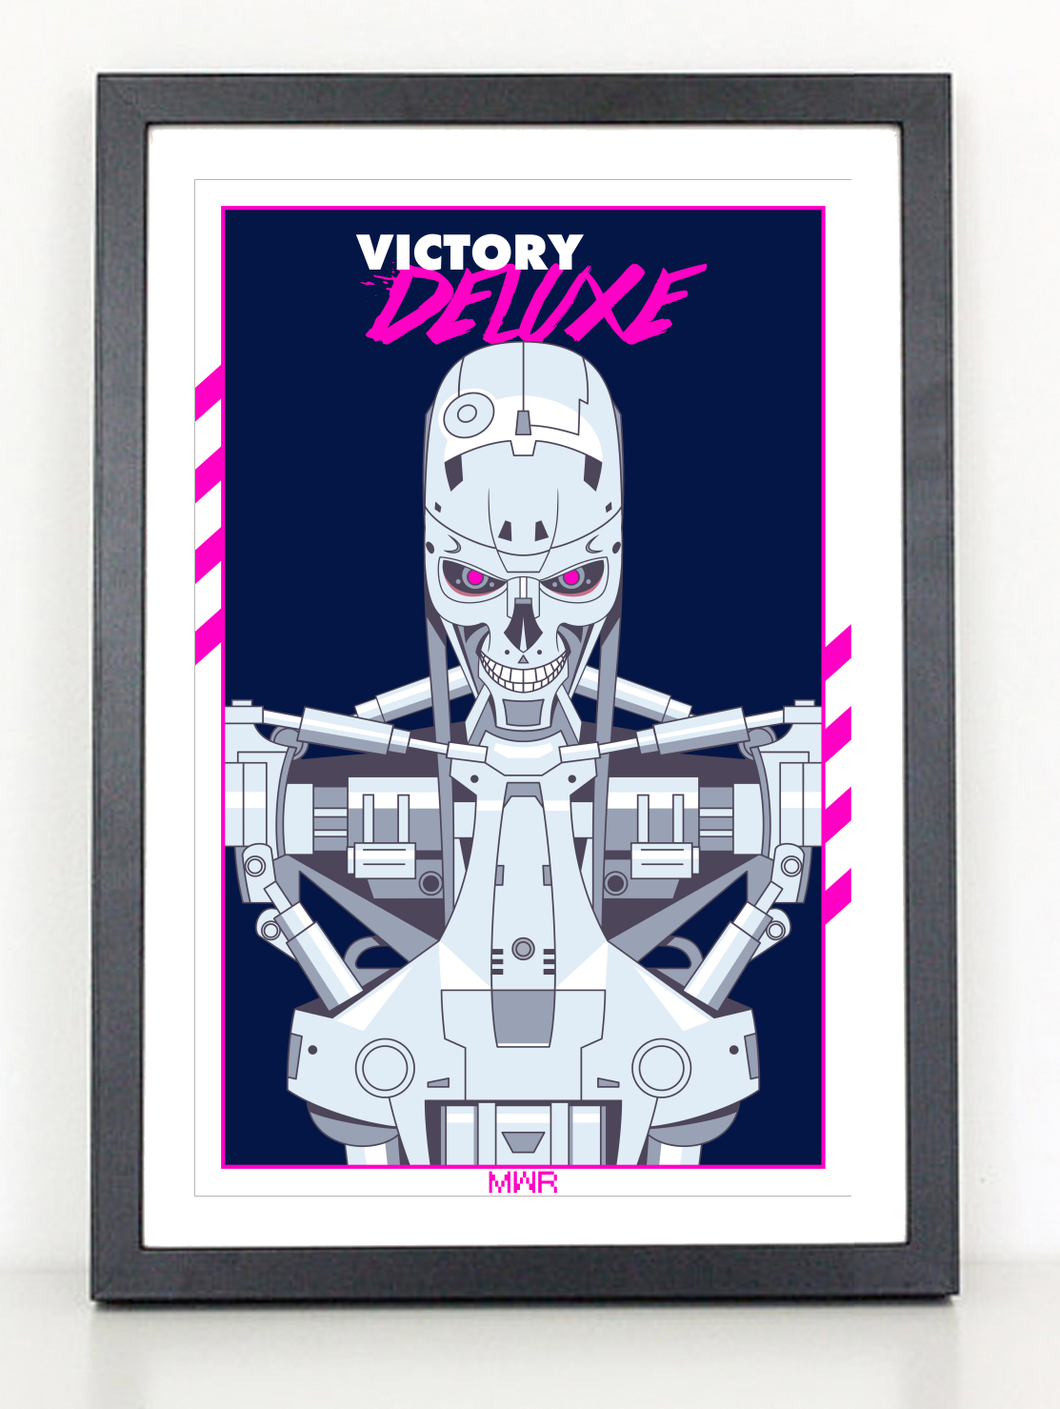 VICTORY DELUXE Terminator 80s poster print